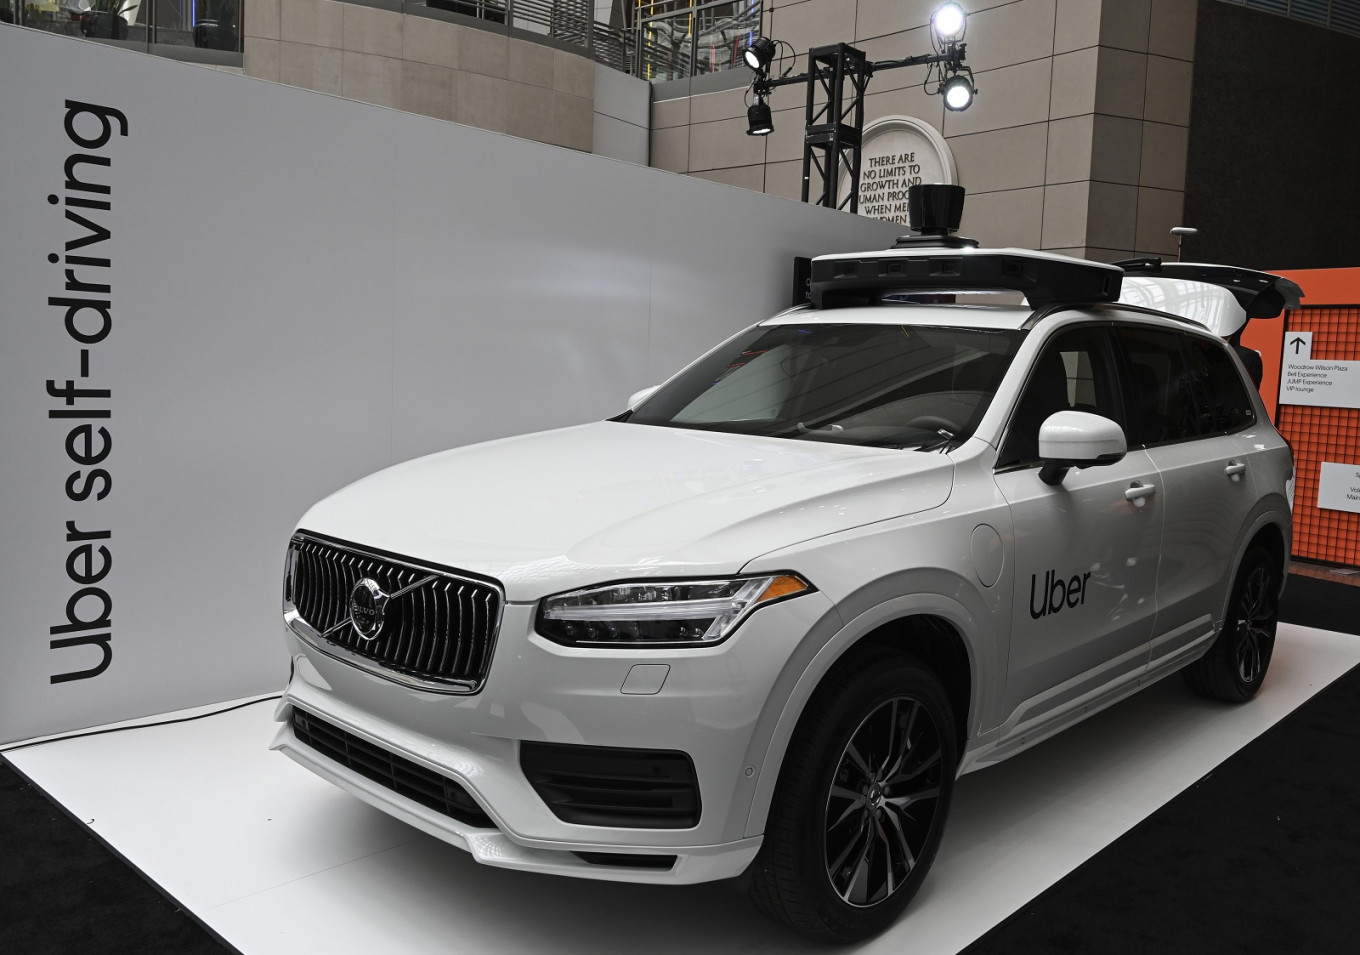 Uber to unveil next-generation Volvo self-driving car